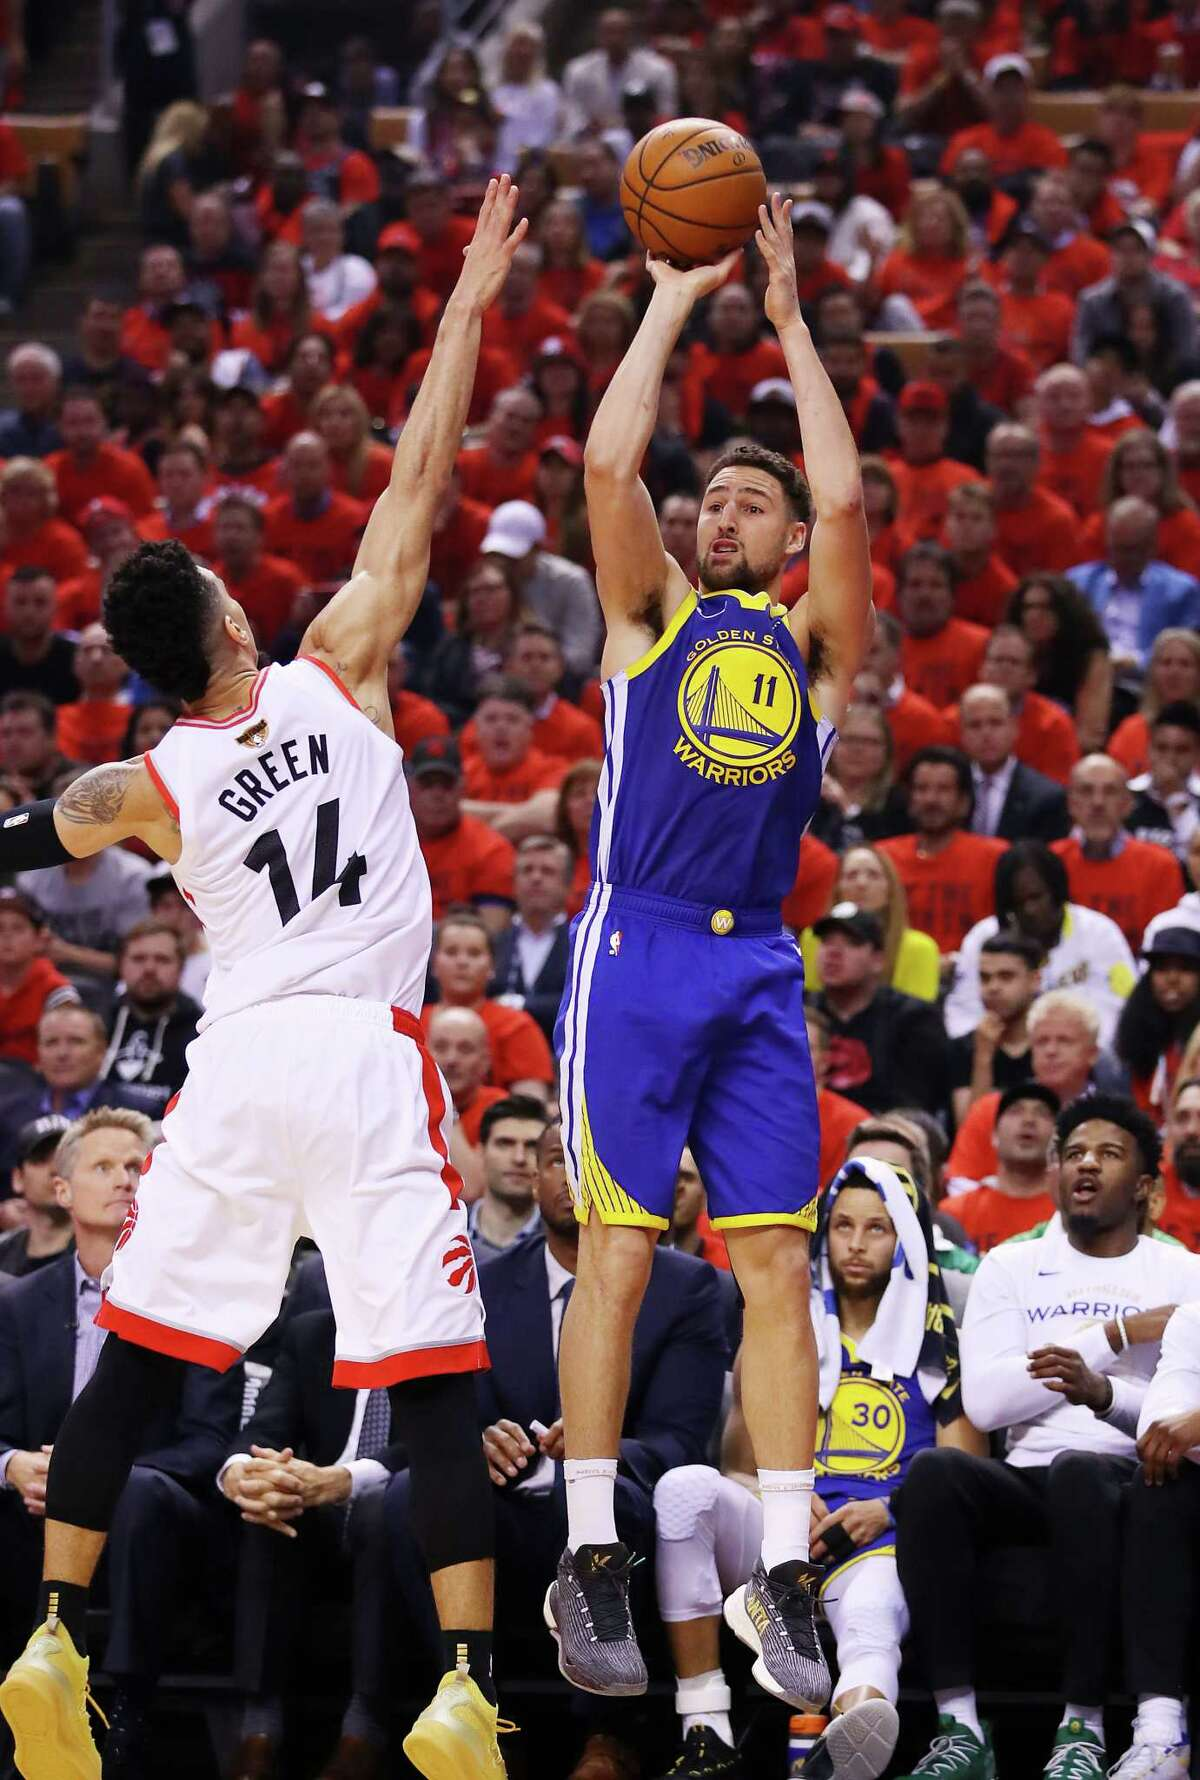 TORONTO, ONTARIO - JUNE 10: Klay Thompson #11 of the Golden State Warriors attempts a shot against Danny Green #14 of the Toronto Raptors in the first half during Game Five of the 2019 NBA Finals at Scotiabank Arena on June 10, 2019 in Toronto, Canada. NOTE TO USER: User expressly acknowledges and agrees that, by downloading and or using this photograph, User is consenting to the terms and conditions of the Getty Images License Agreement. (Photo by Gregory Shamus/Getty Images)